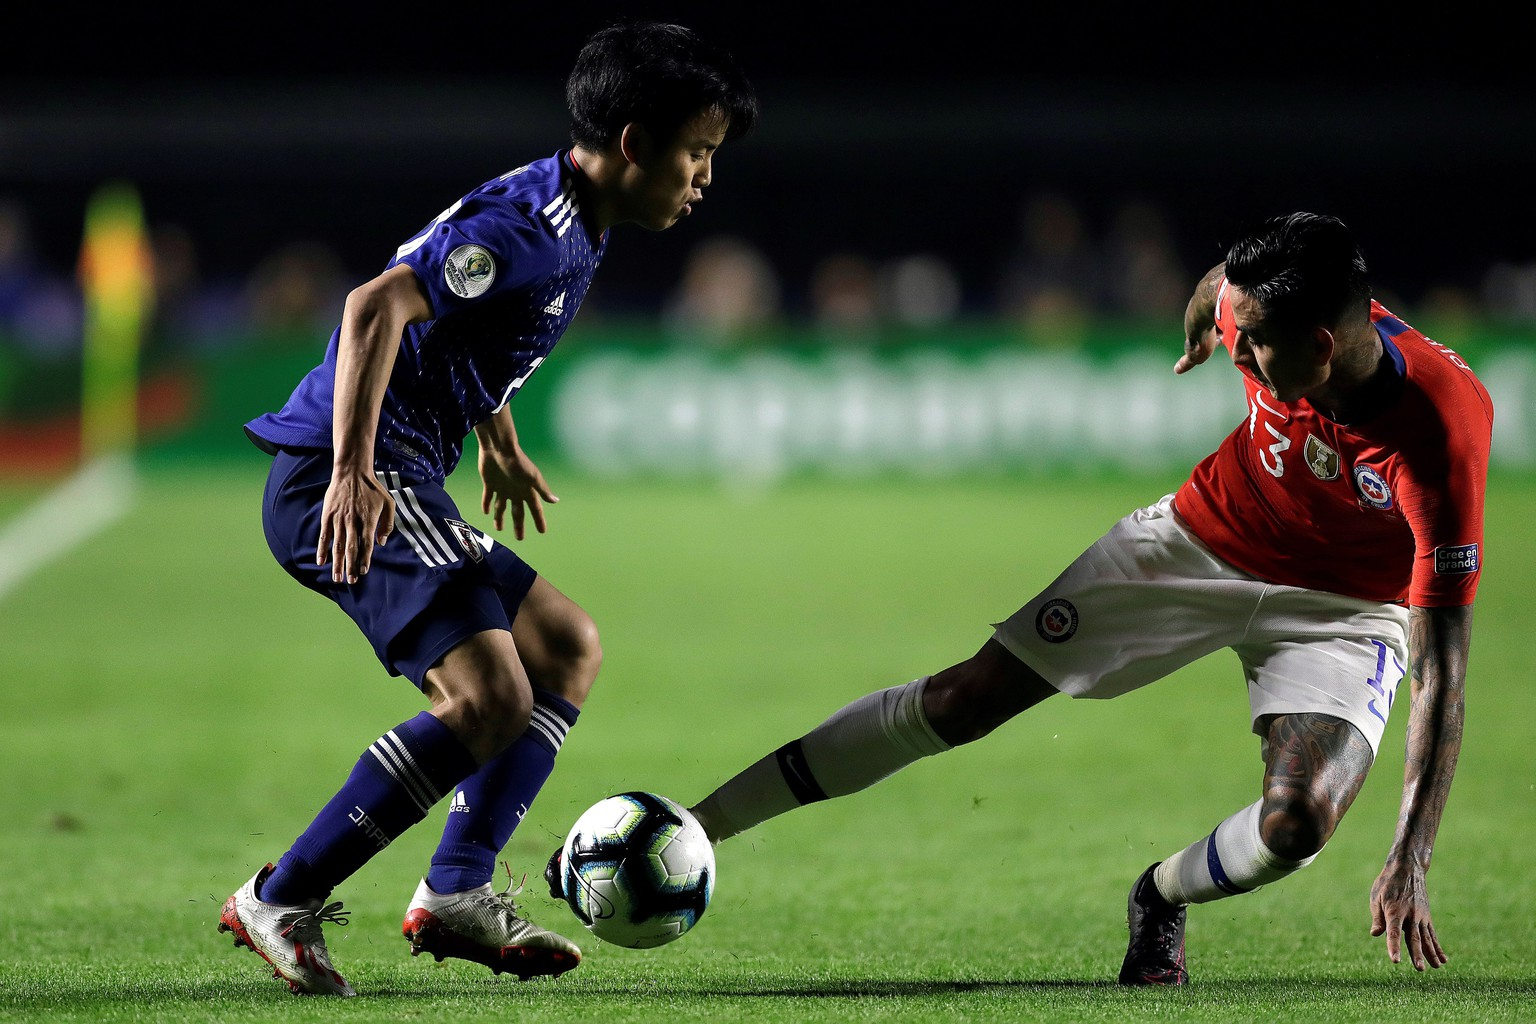 epa07654828 Takefusa Kubo (L) of Japan in action against Erick Pulgar (R) of Chile during the Copa America 2019 Group C soccer match between Japan and Chile, at Morumbi Stadium in Sao Paulo, Brazil, 17 June 2019.  EPA/Fernando Bizerra